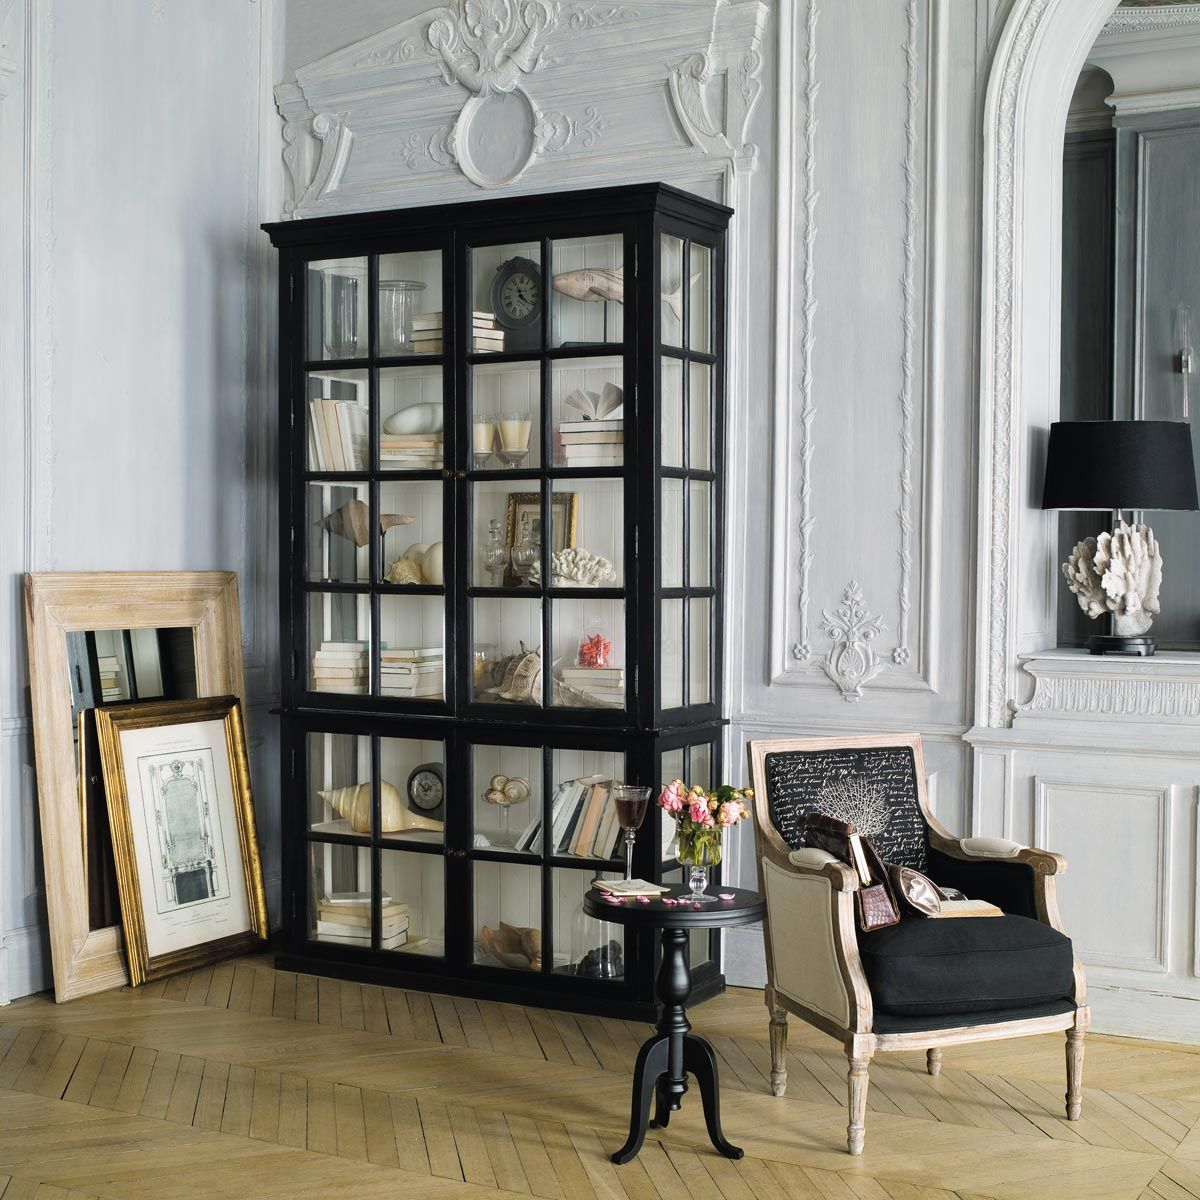 b cherregal mit 4 verglasten t ren aus schwarzem mangoholz in 2019 decor style bookcase with